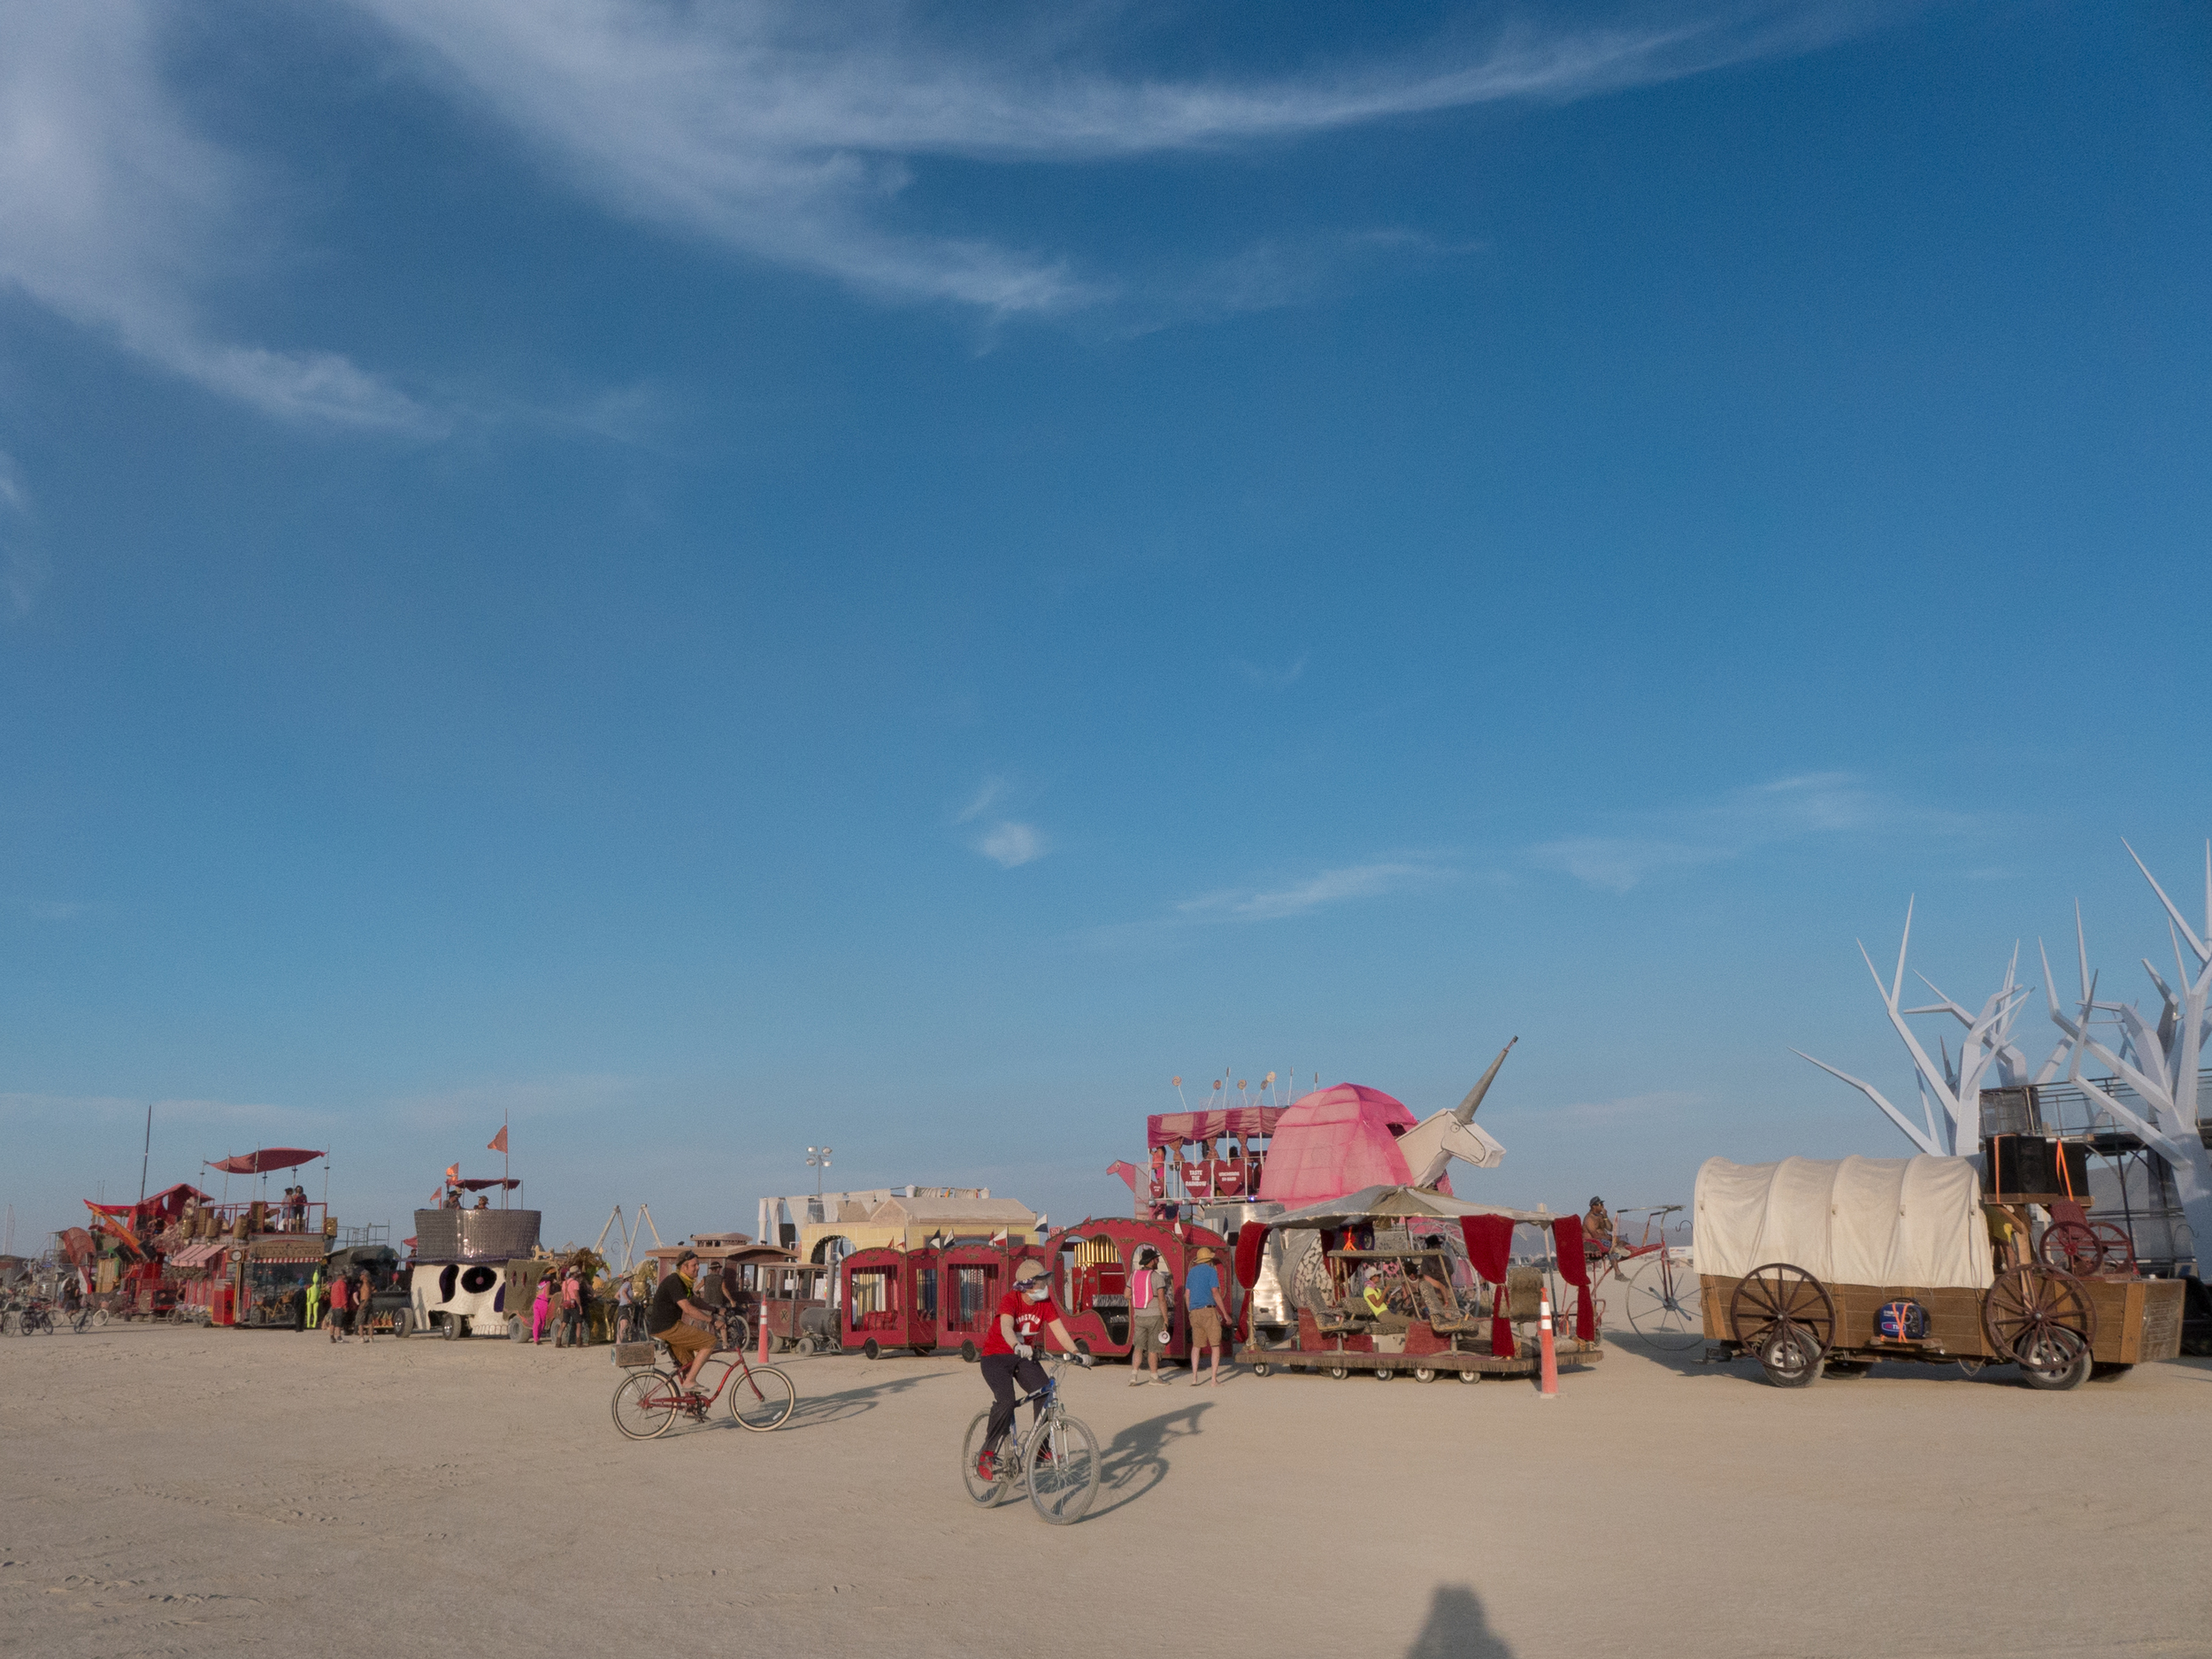 burning man, burning man 2015, playa, playa portraits, burning man photography, burning man photographer, burning man art, burning man bikes, burning man portraits, art car, burning man dmv, mutant vehicles